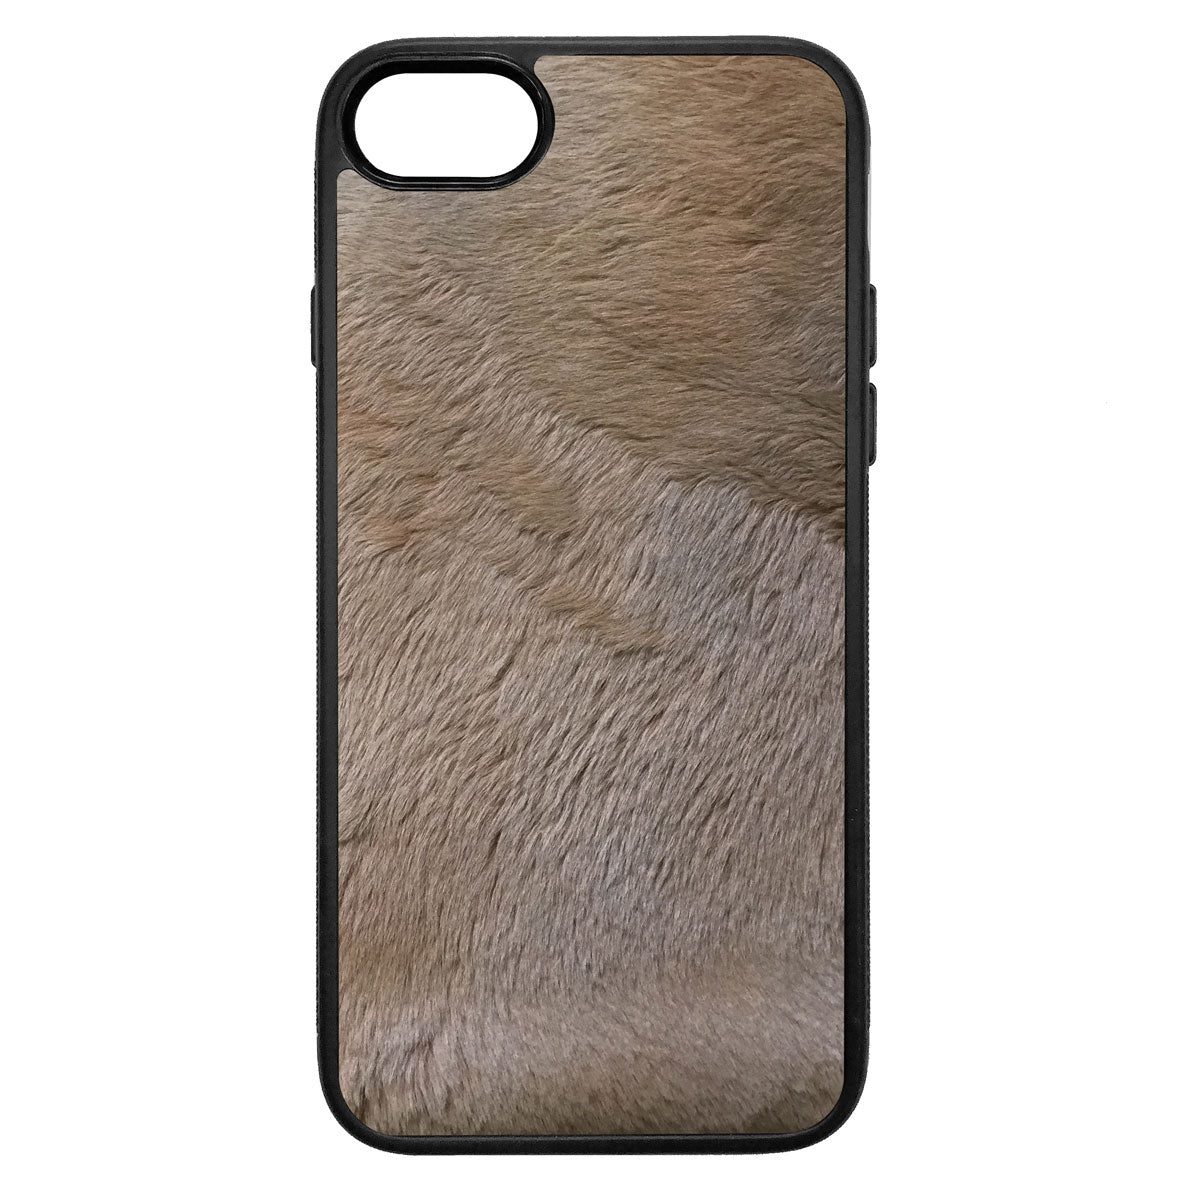 Kangaroo Fur iPhone 7 Leather Case